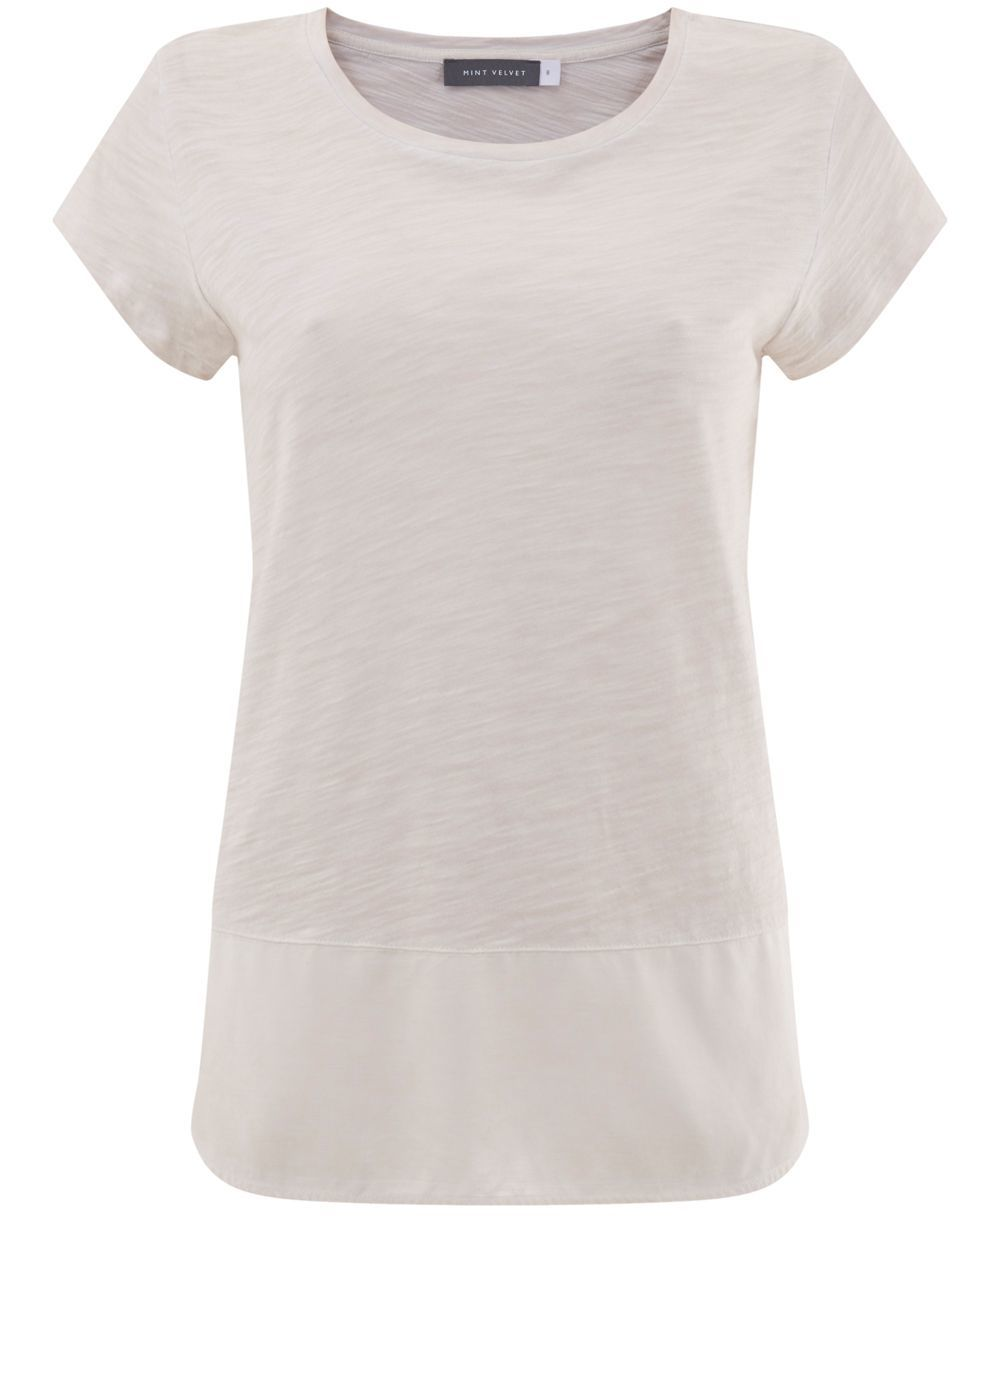 Powder Woven Hem Tee, Pink - pattern: plain; style: t-shirt; predominant colour: light grey; occasions: casual; length: standard; fibres: cotton - mix; fit: body skimming; neckline: crew; sleeve length: short sleeve; sleeve style: standard; pattern type: fabric; texture group: jersey - stretchy/drapey; season: s/s 2016; wardrobe: basic